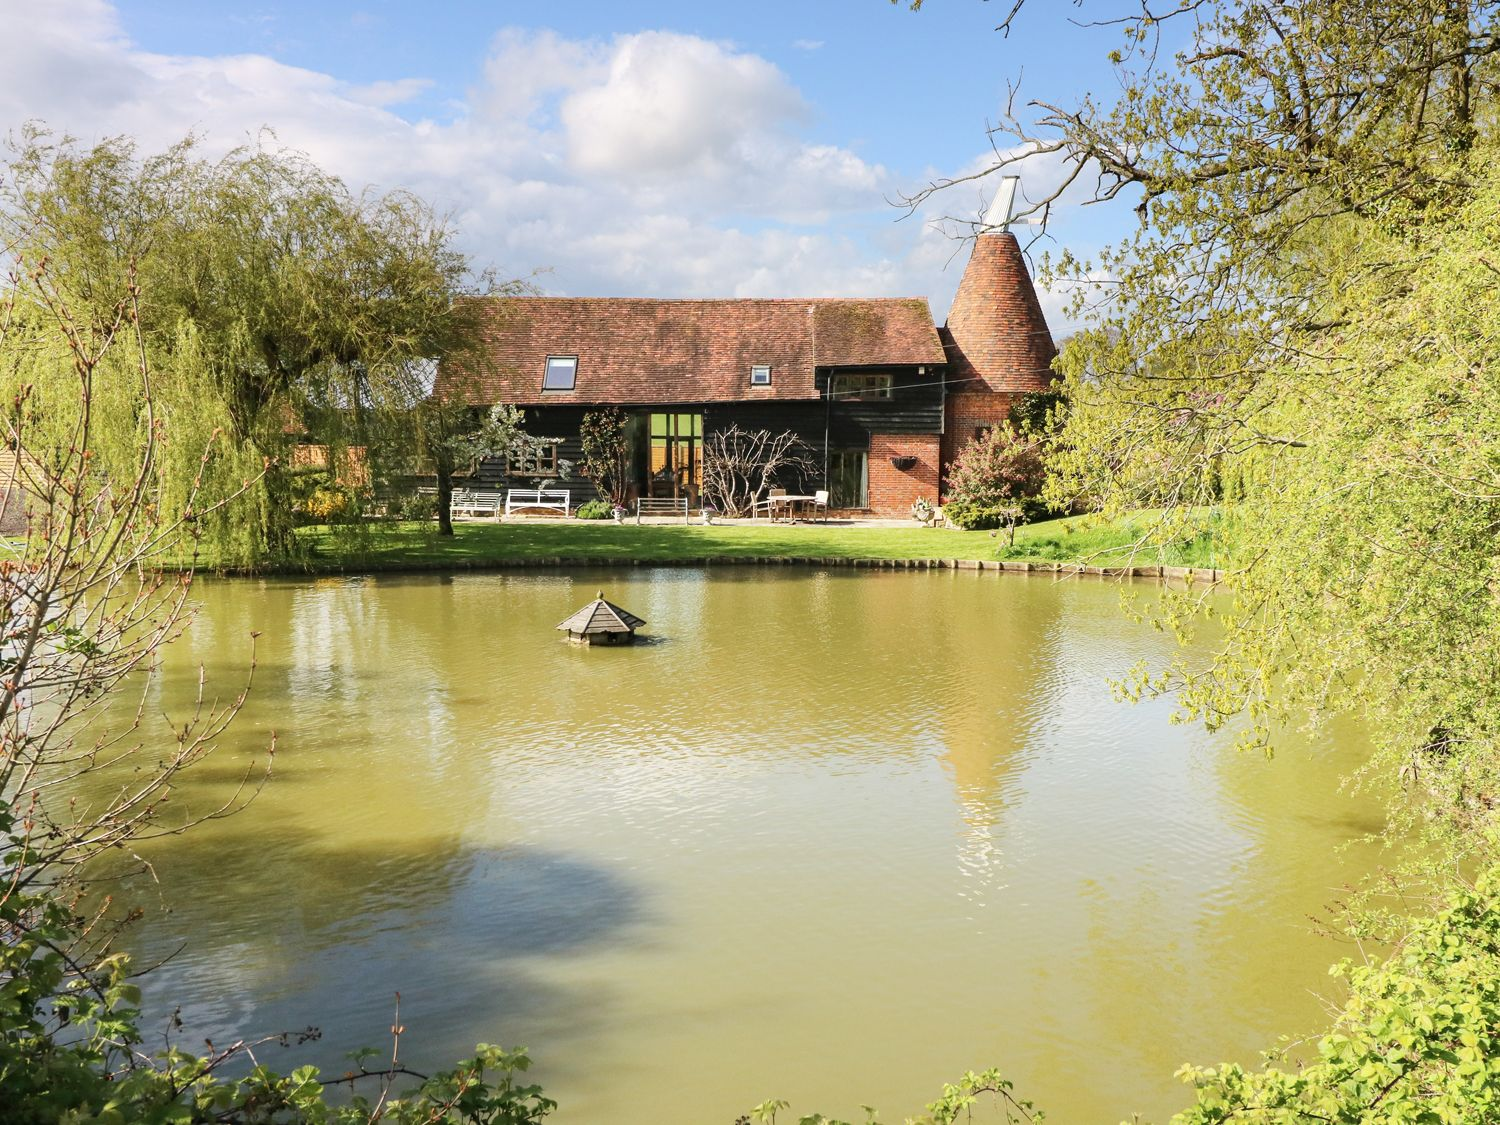 Holiday Cottages in Kent: Harbourne Oast, St. Michaels | Sykes Cottages